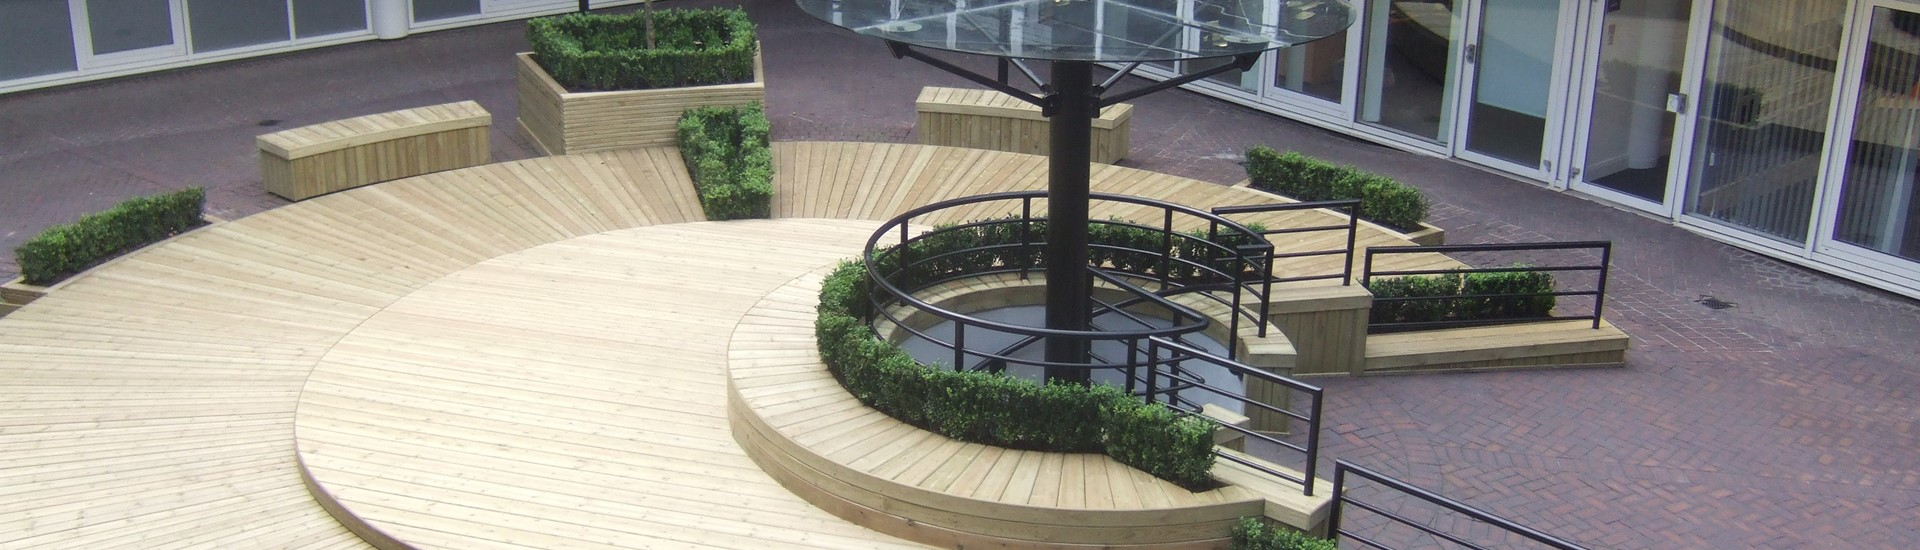 Timber Decking Designers Installers | Decking Company UK